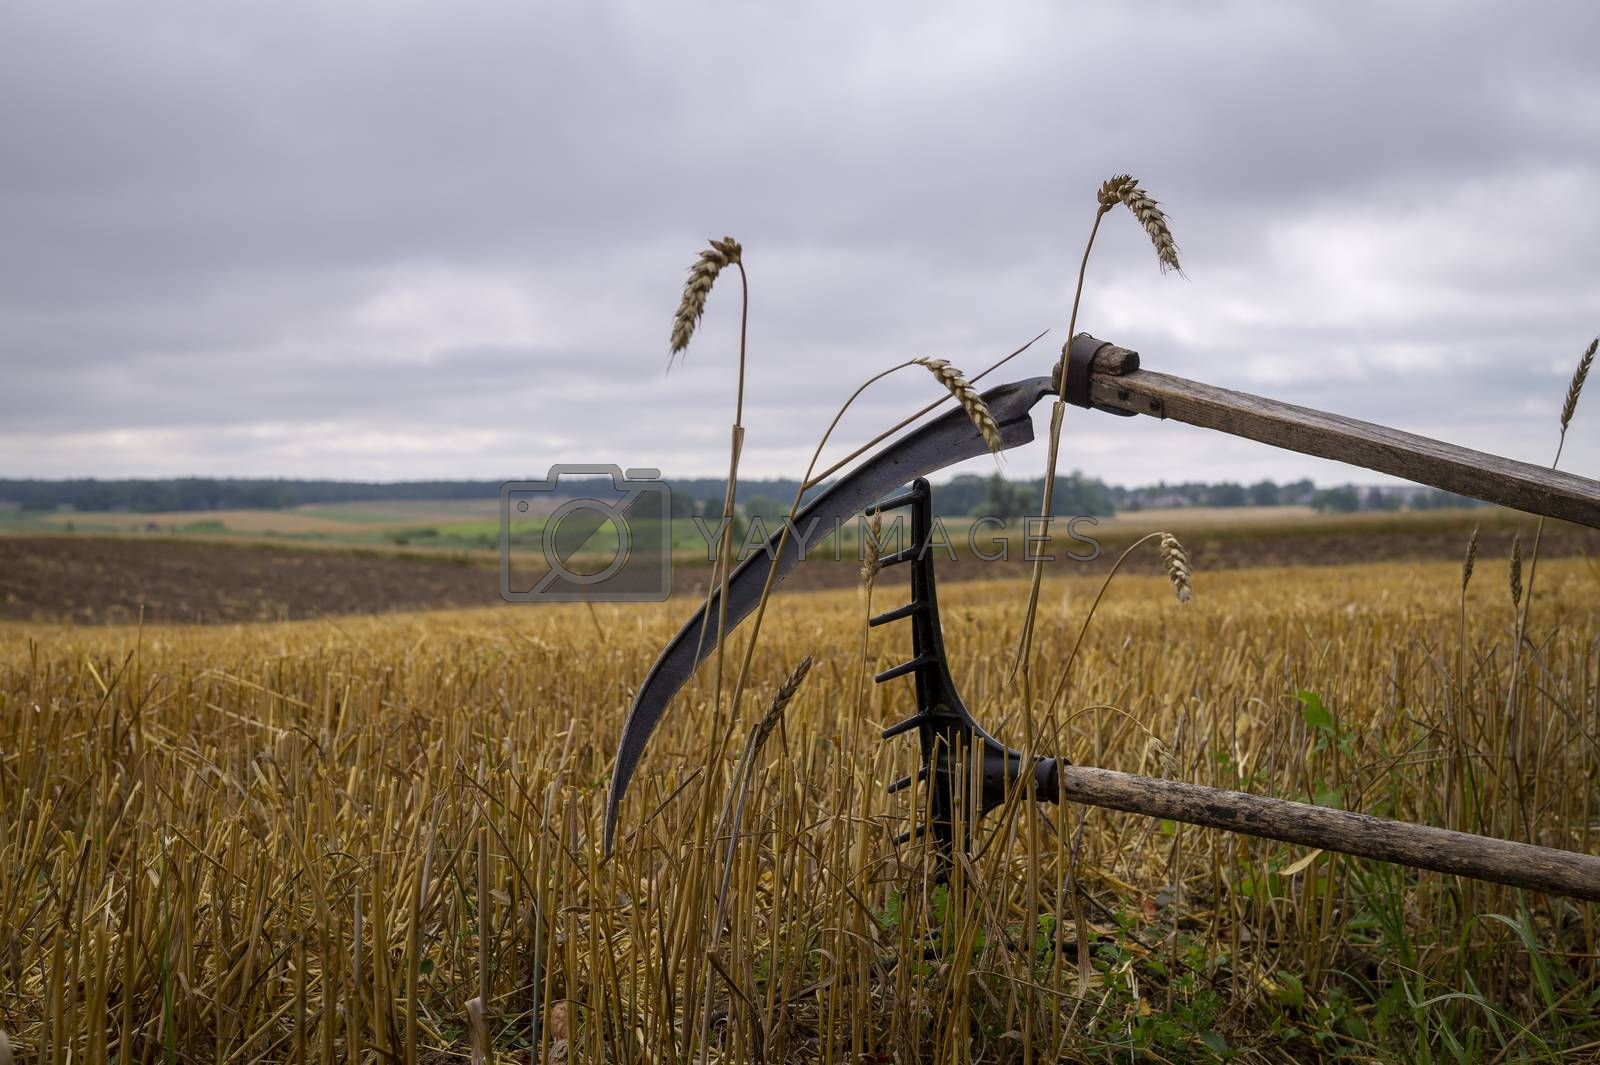 Rustic scythe and rake in a harvested field of wheat with stalk stubble in an agricultural landscape